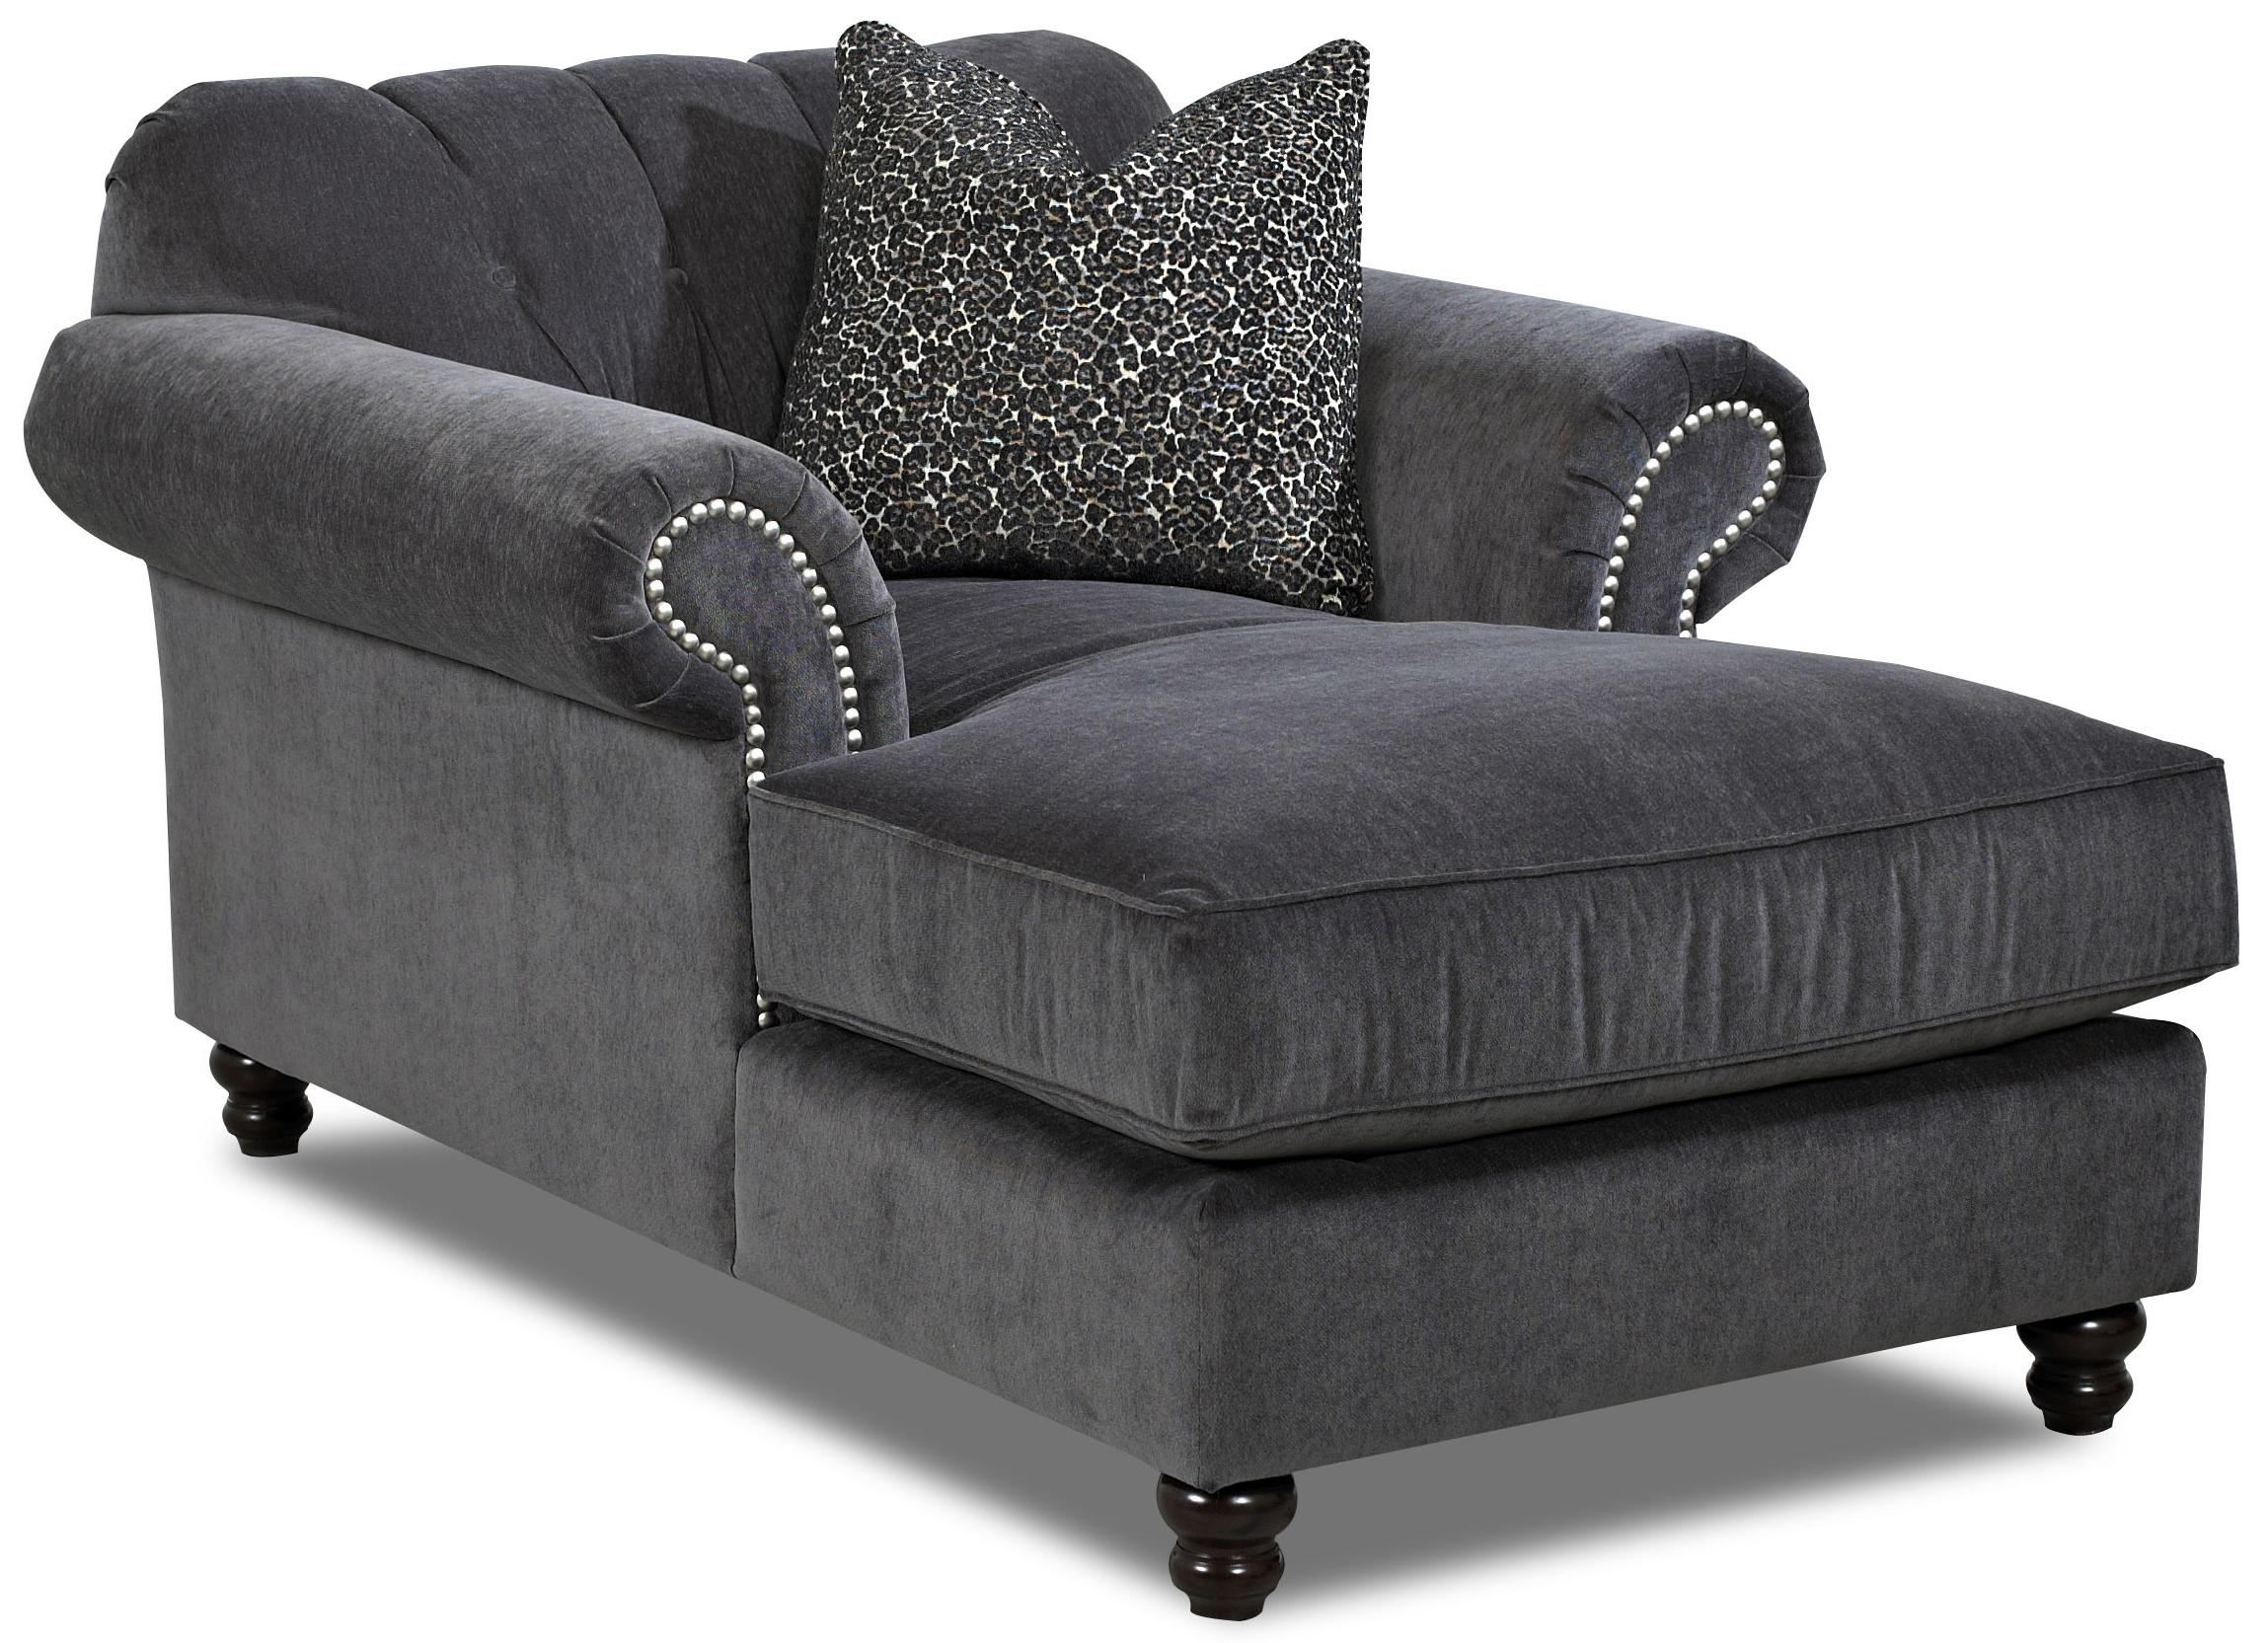 Klaussner Flynn Traditional Chaise with Button Tufted Back Rolled Arms and Throw Pillow - AHFA - Chaise Dealer Locator  sc 1 st  Furniture Dealer Locator - Find your furniture : rolled arm chaise - Sectionals, Sofas & Couches